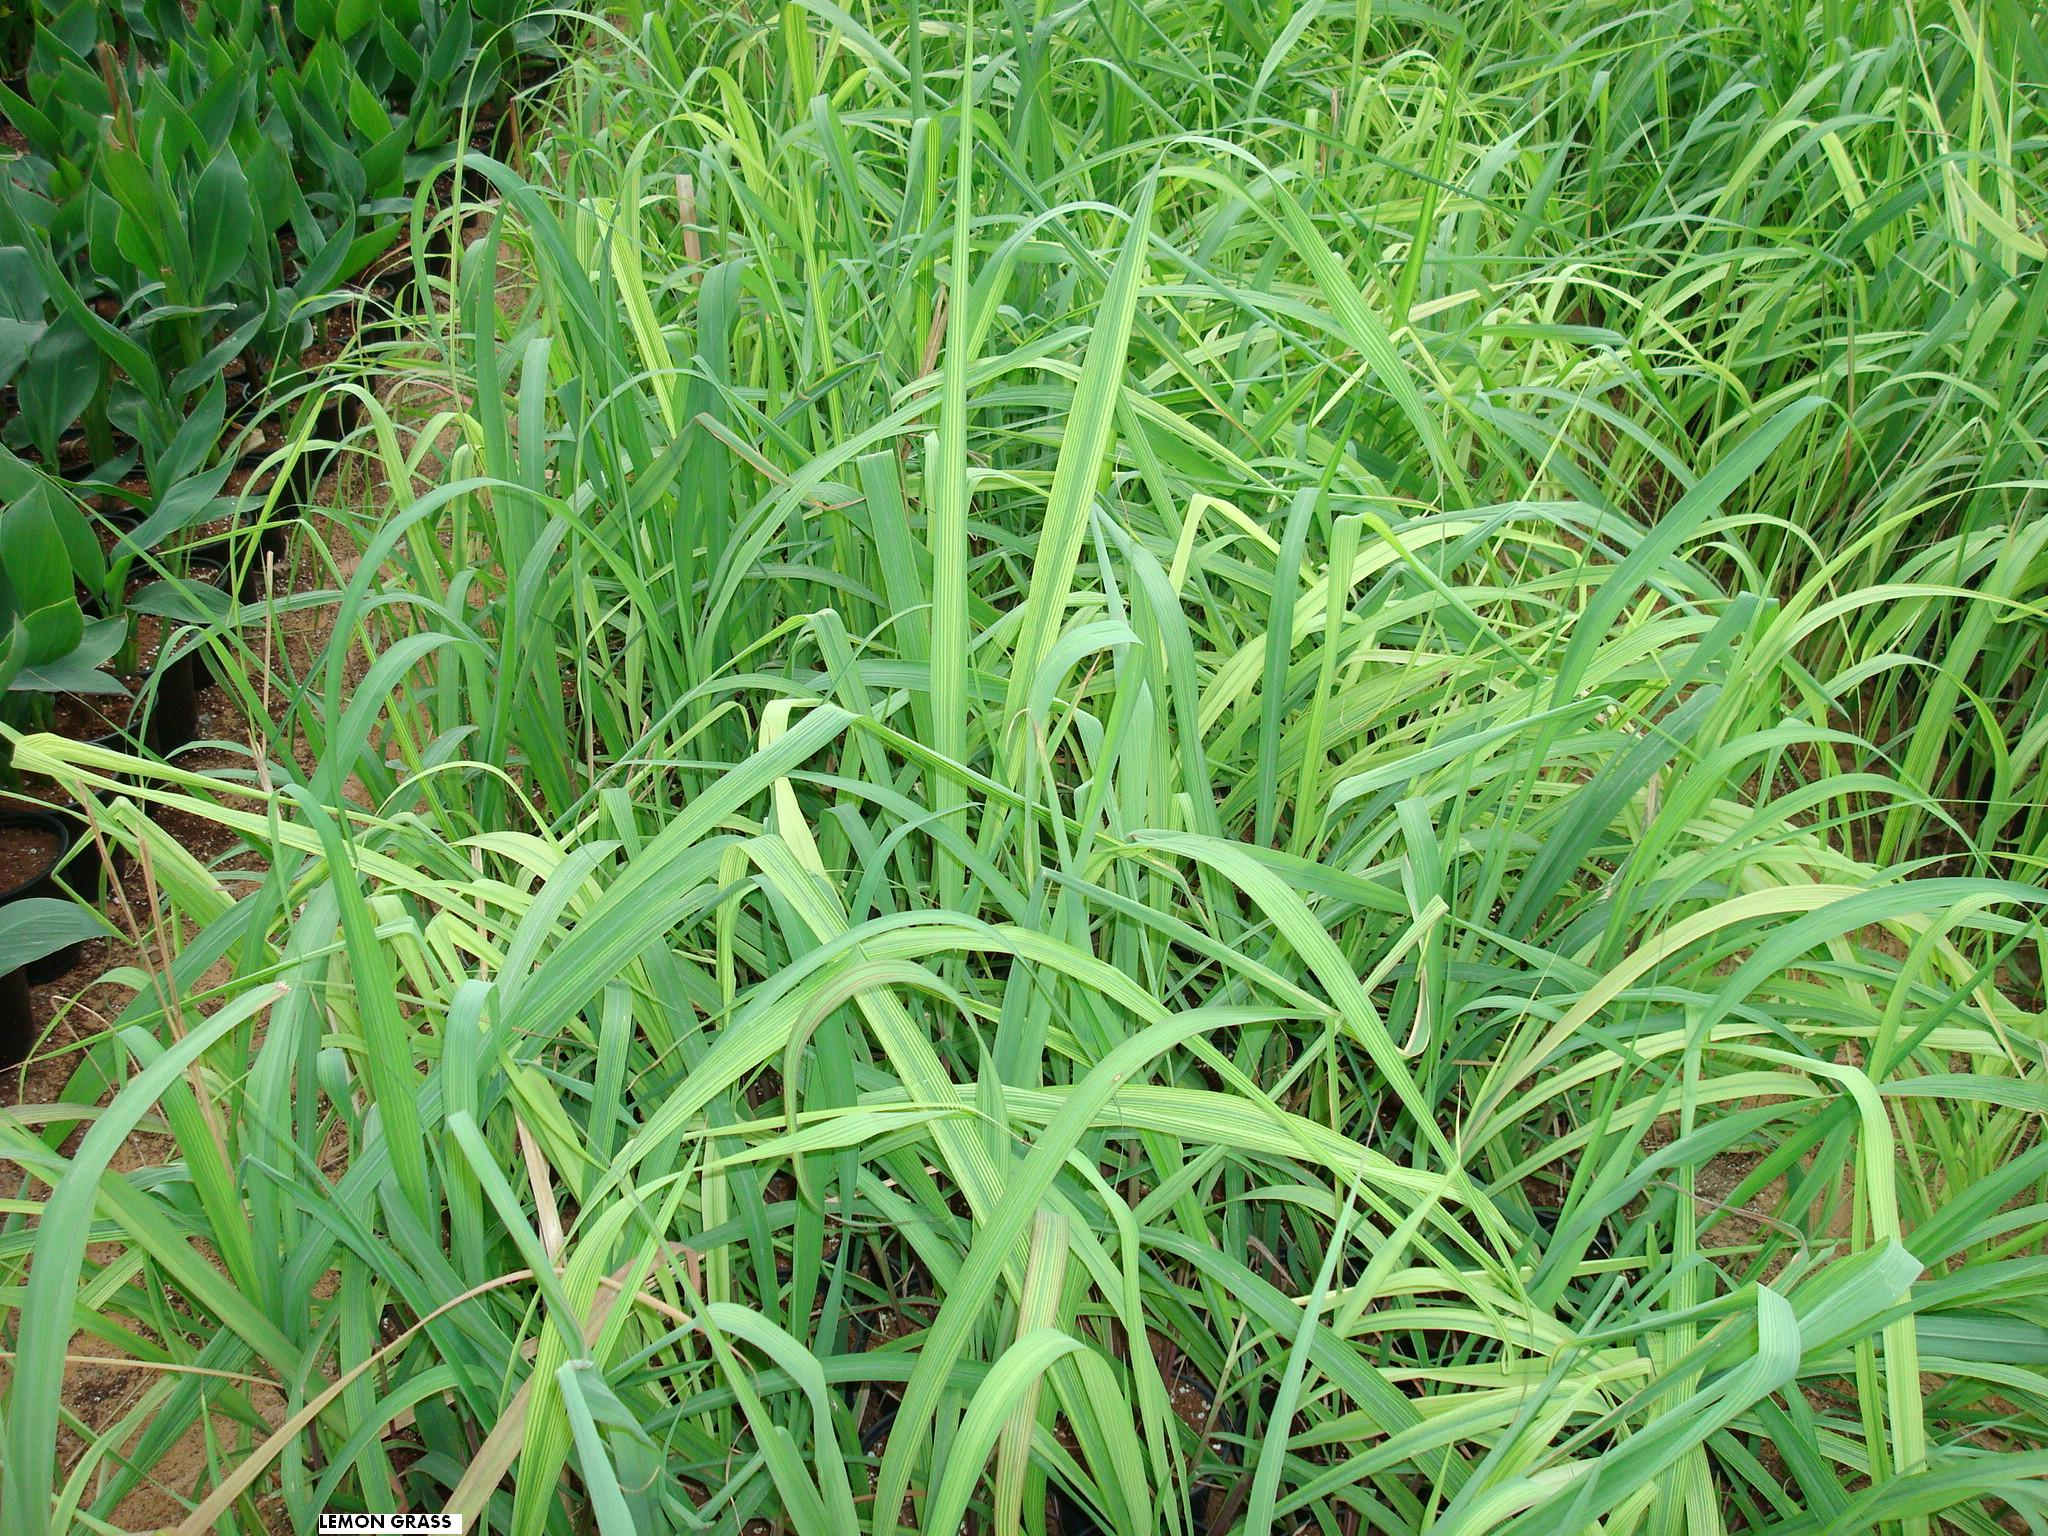 Cymbopogon lemon grass